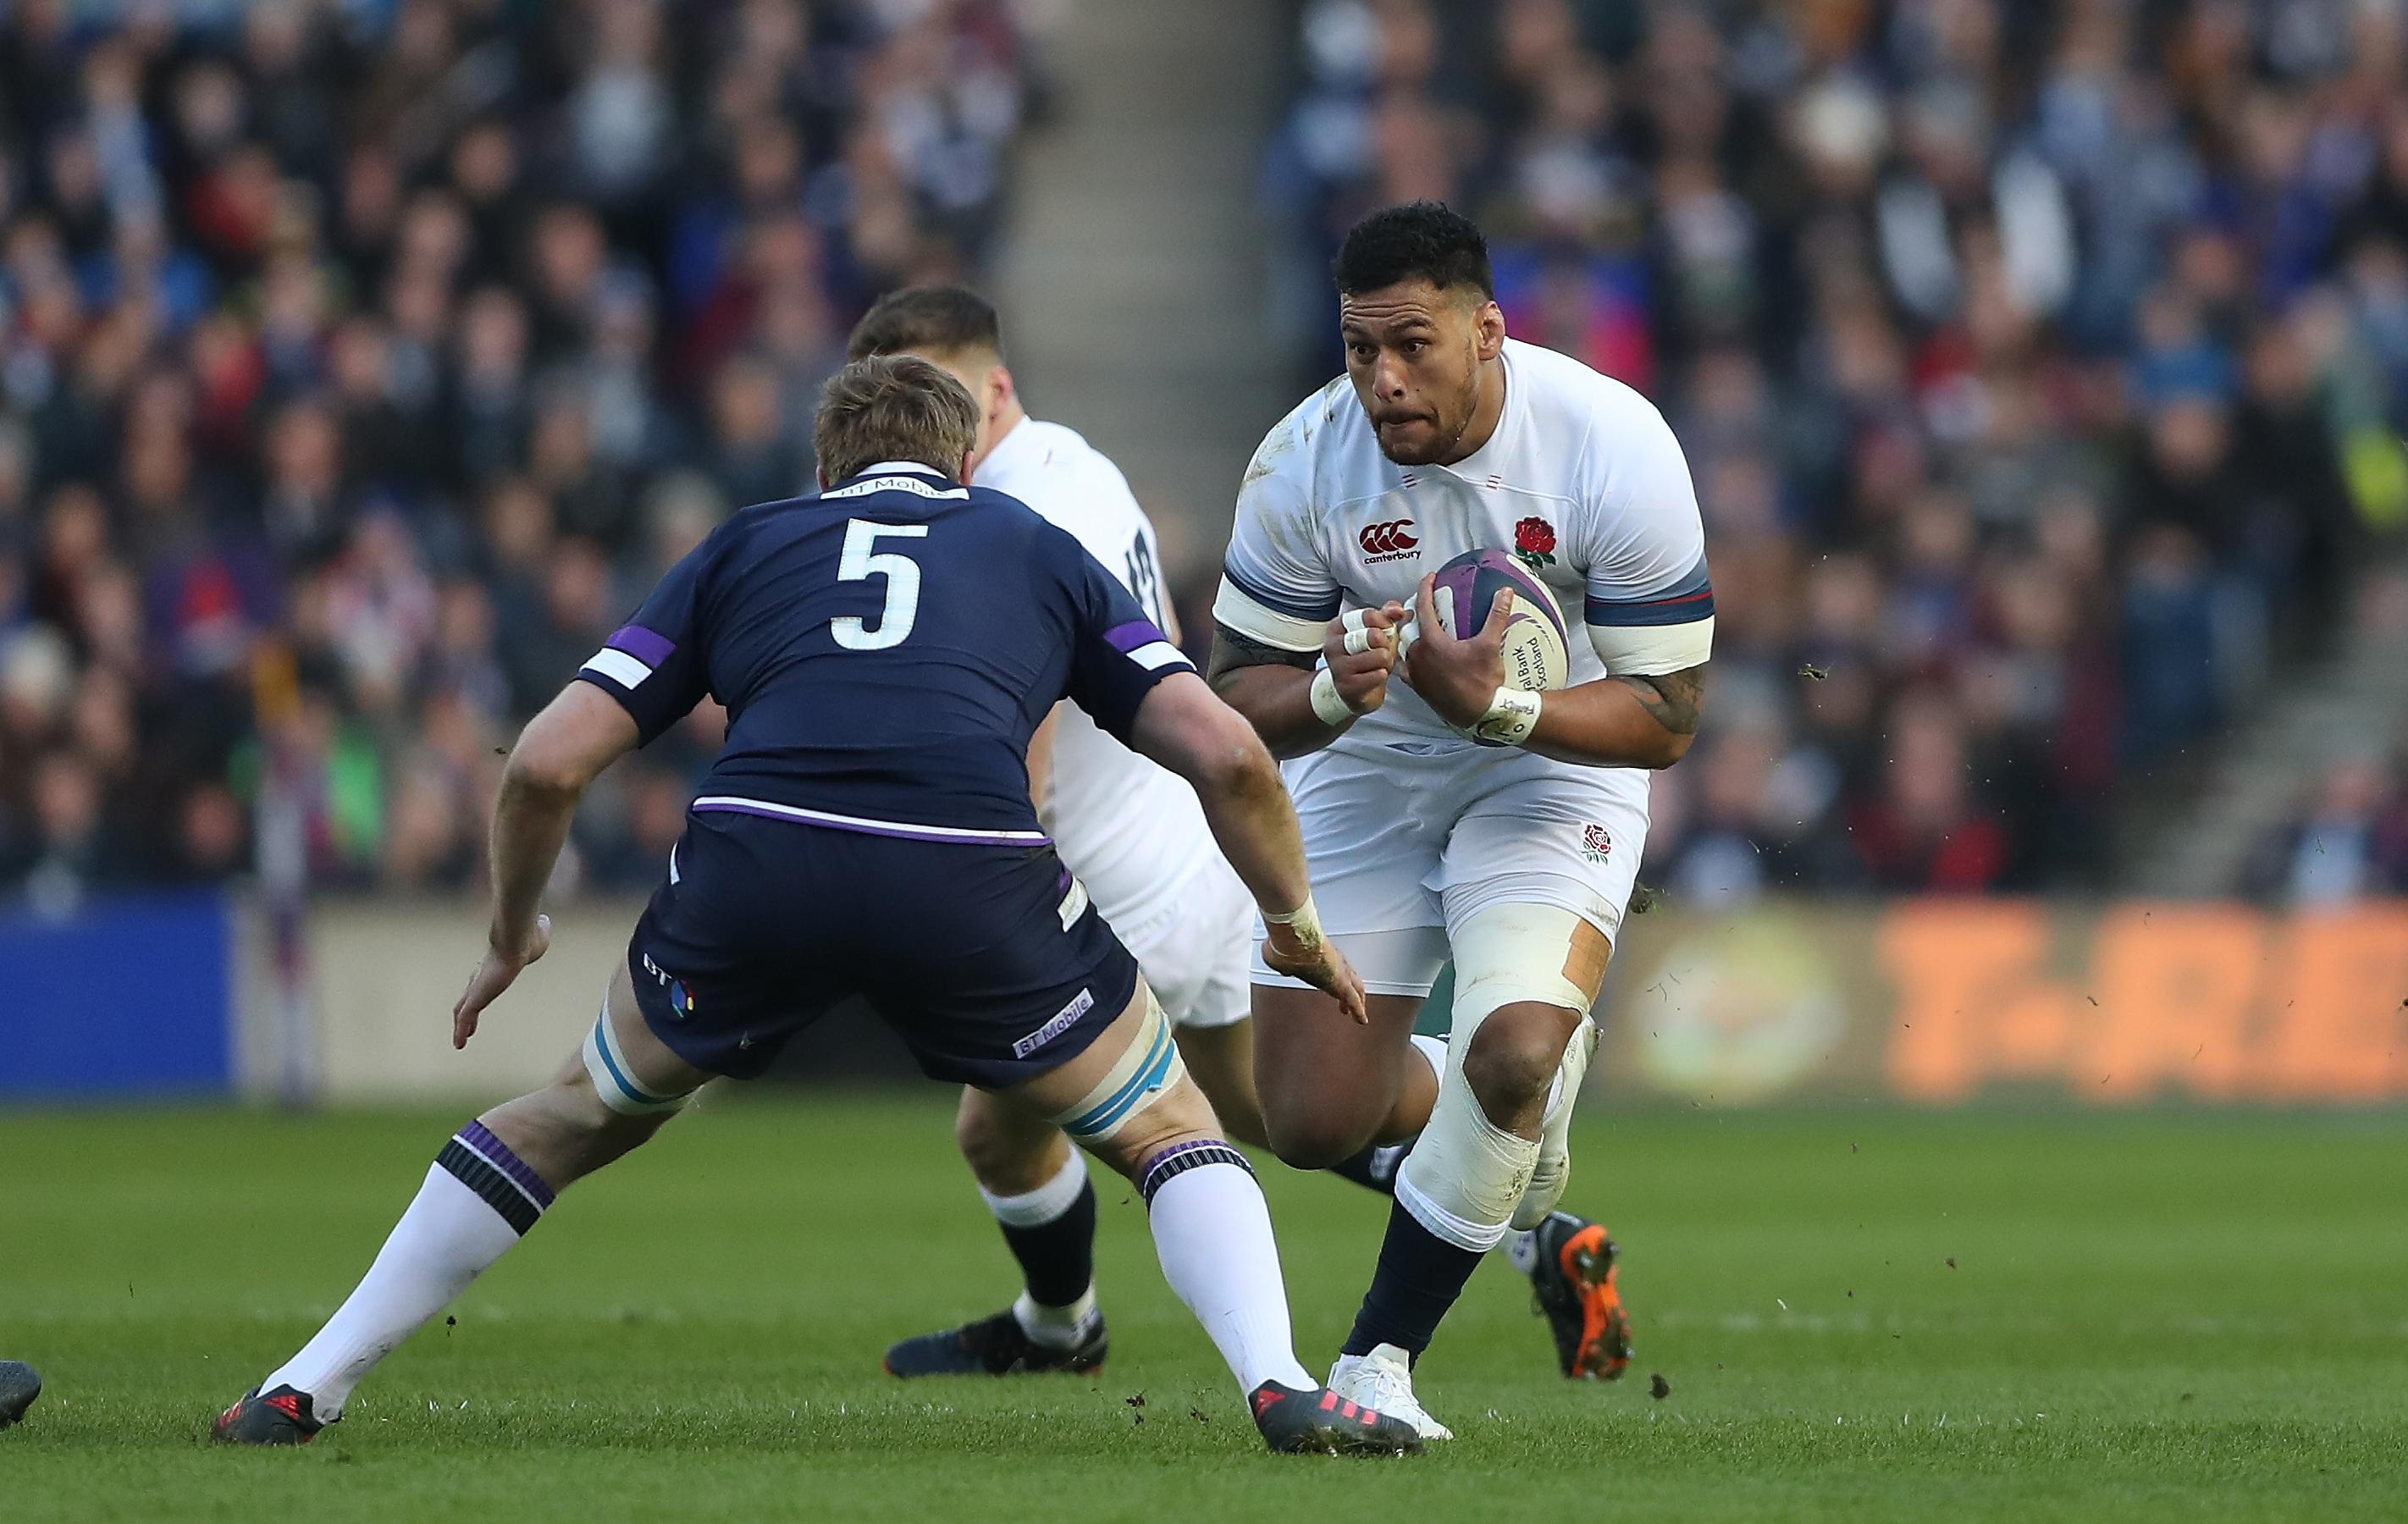 Nathan Hughes could miss England's autumn series after being cited for punching